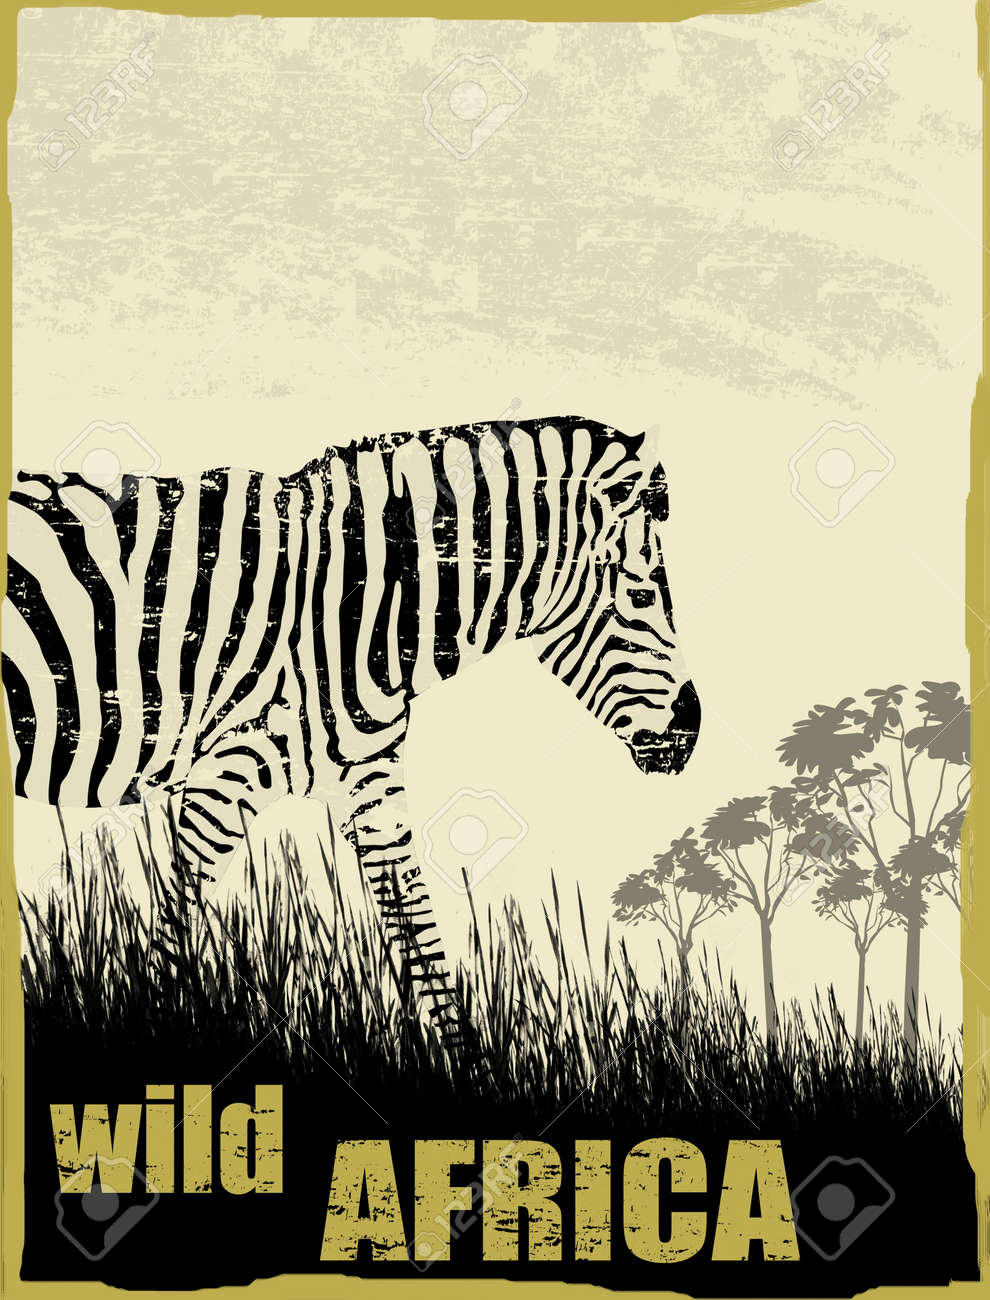 Wild africa image with zebra silhouette on grunge background, vector illustration Stock Vector - 17132177